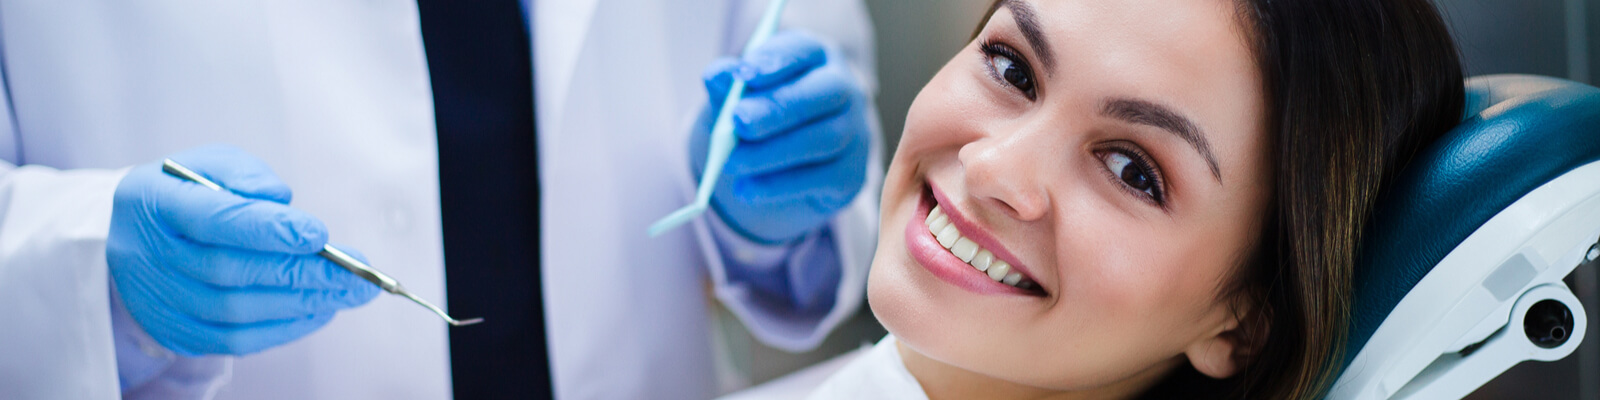 how to attract new patients to your dental practice - feature image